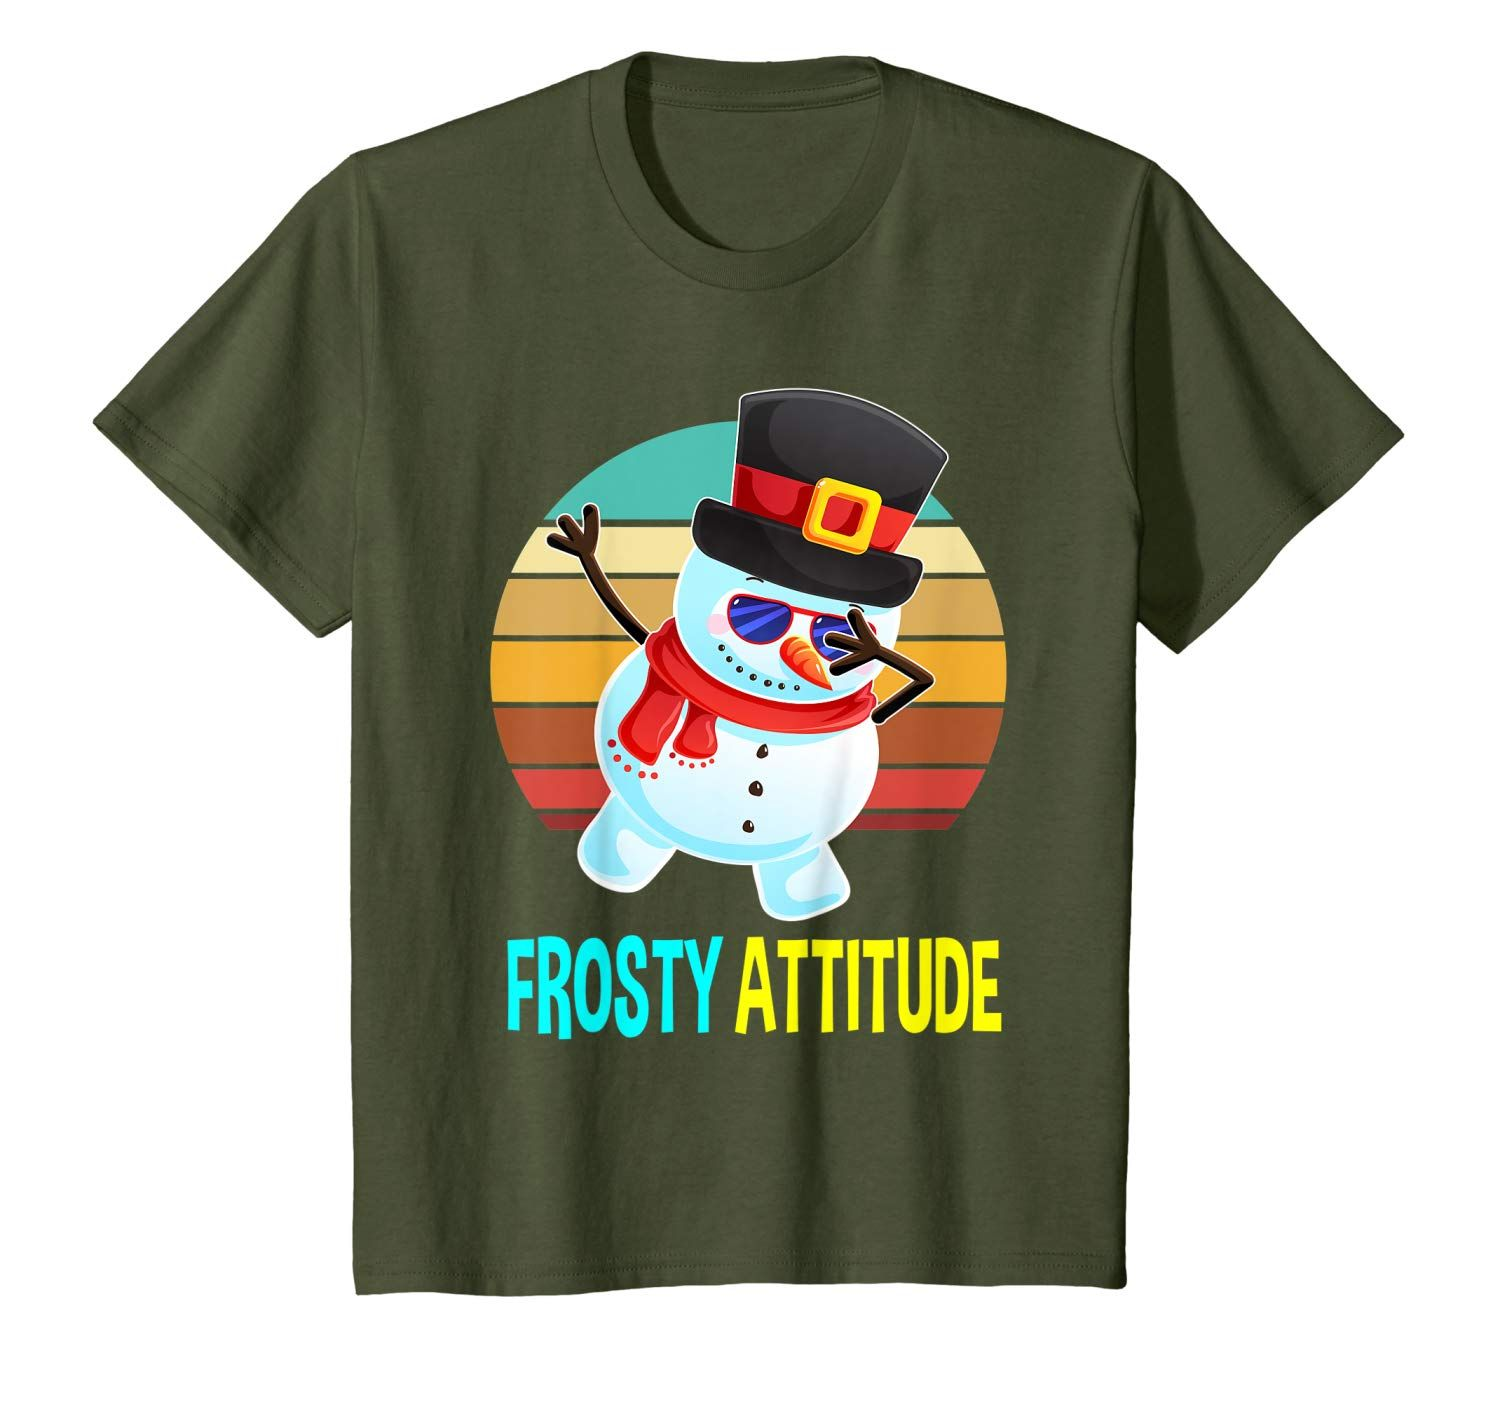 MERRY CHRISTMAS TSHIRT PRESENT WOMEN AND KIDS MANY SIZES MANY COLOURS MEN